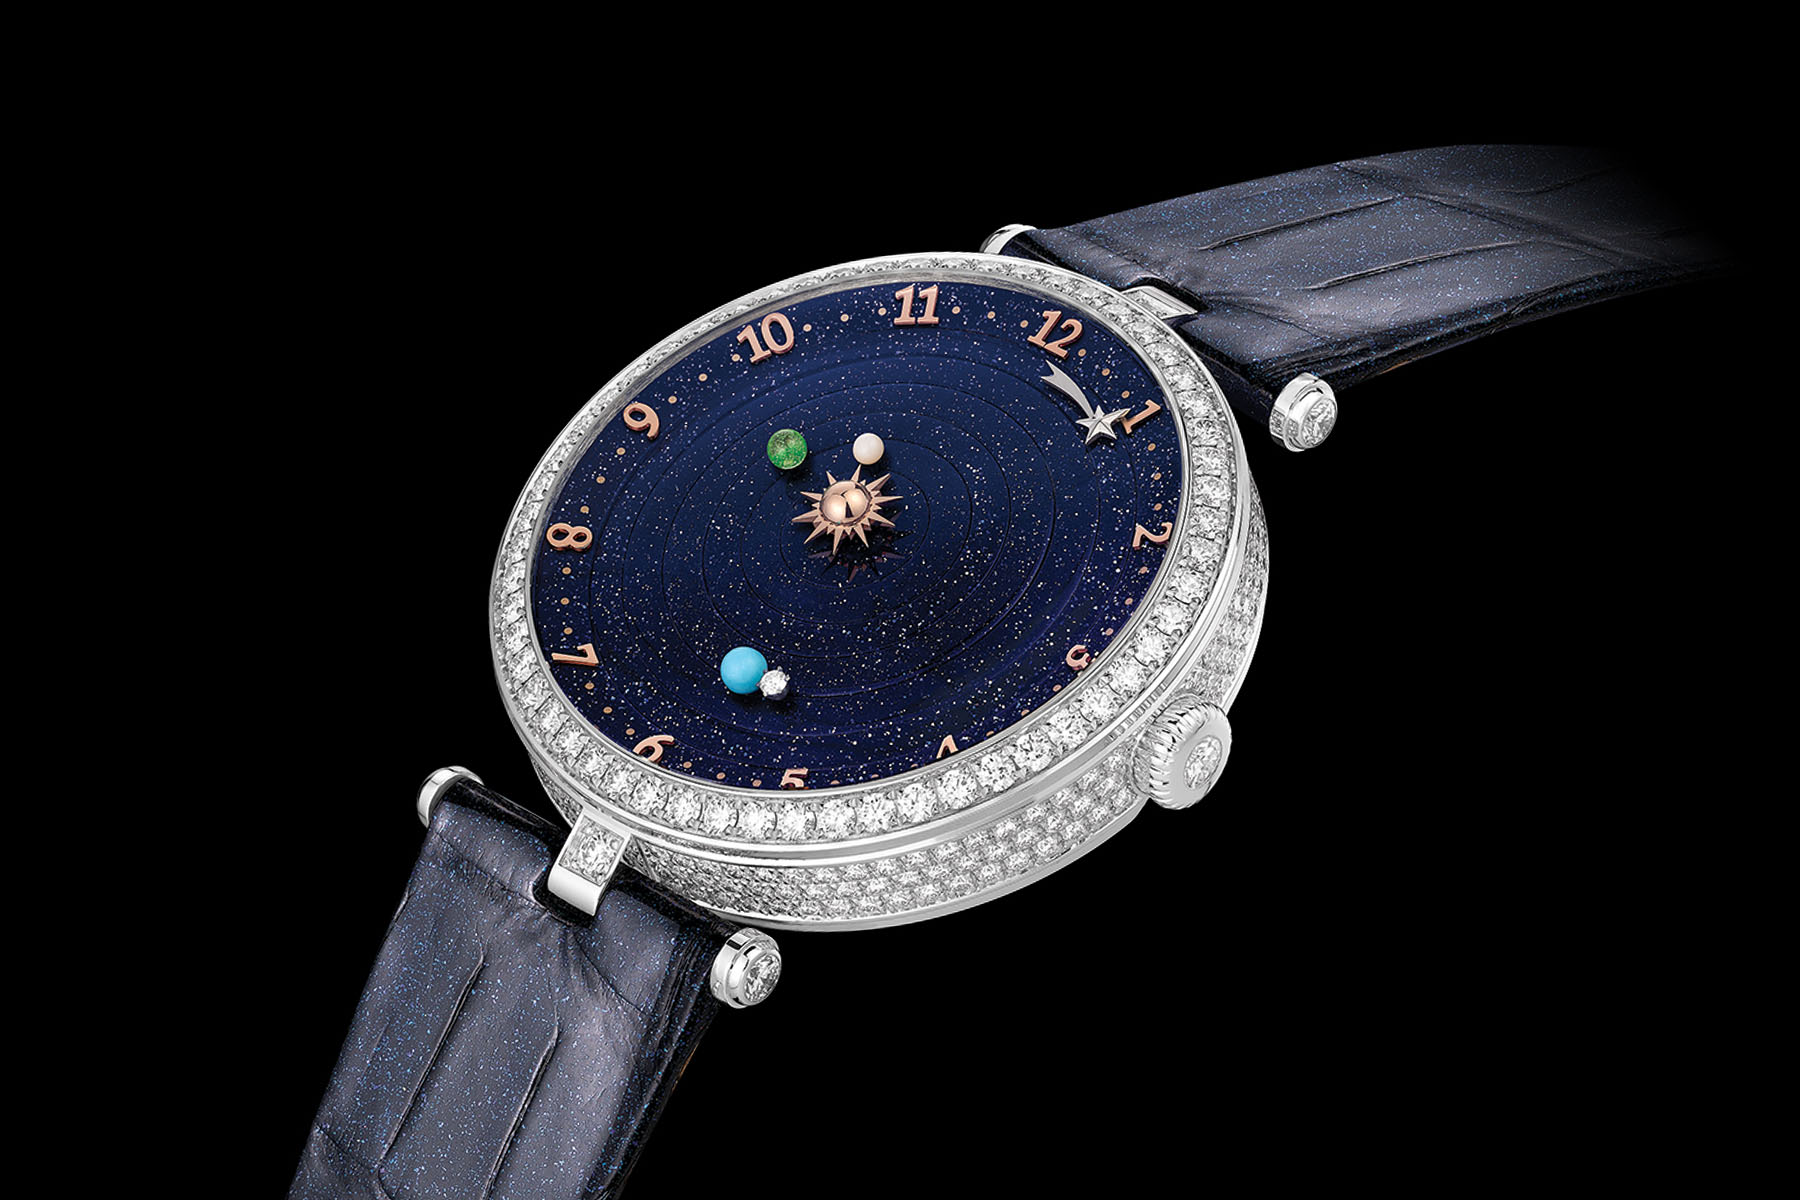 Van Cleef and Arpels Lady Arpels Planetarium - Christiaan van der Klaauw collaboration